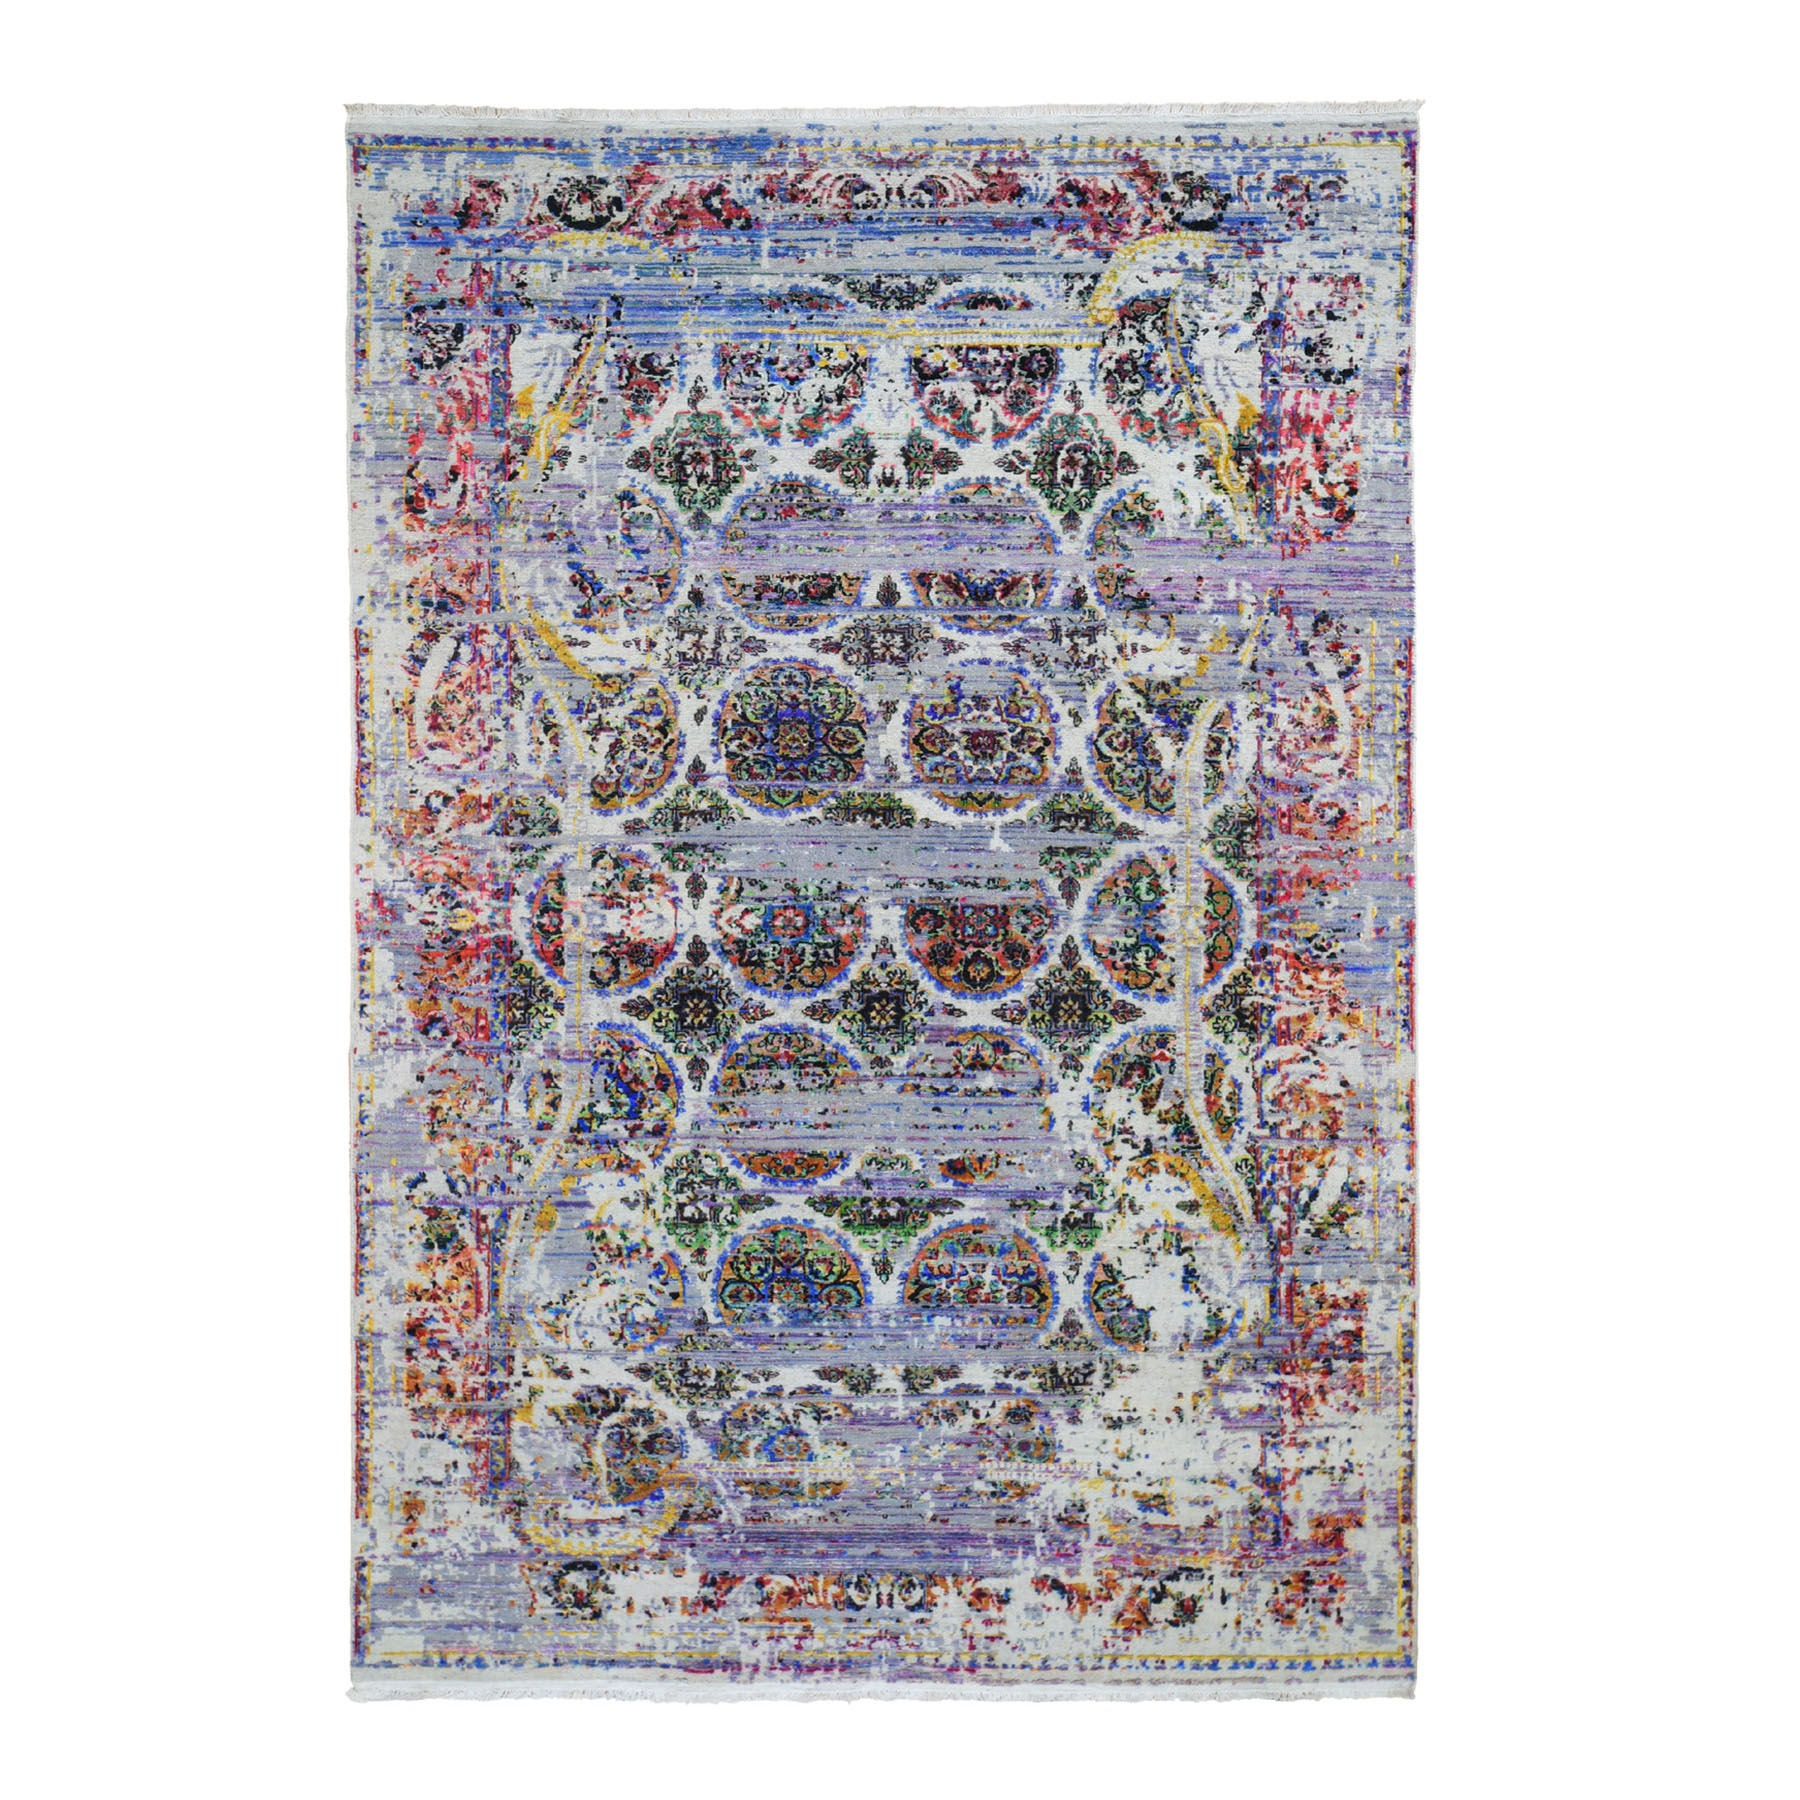 "6'x9'1"" ERASED ROSSETS, Colorful Sari Silk With Textured Wool Hand-Knotted Oriental Rug"